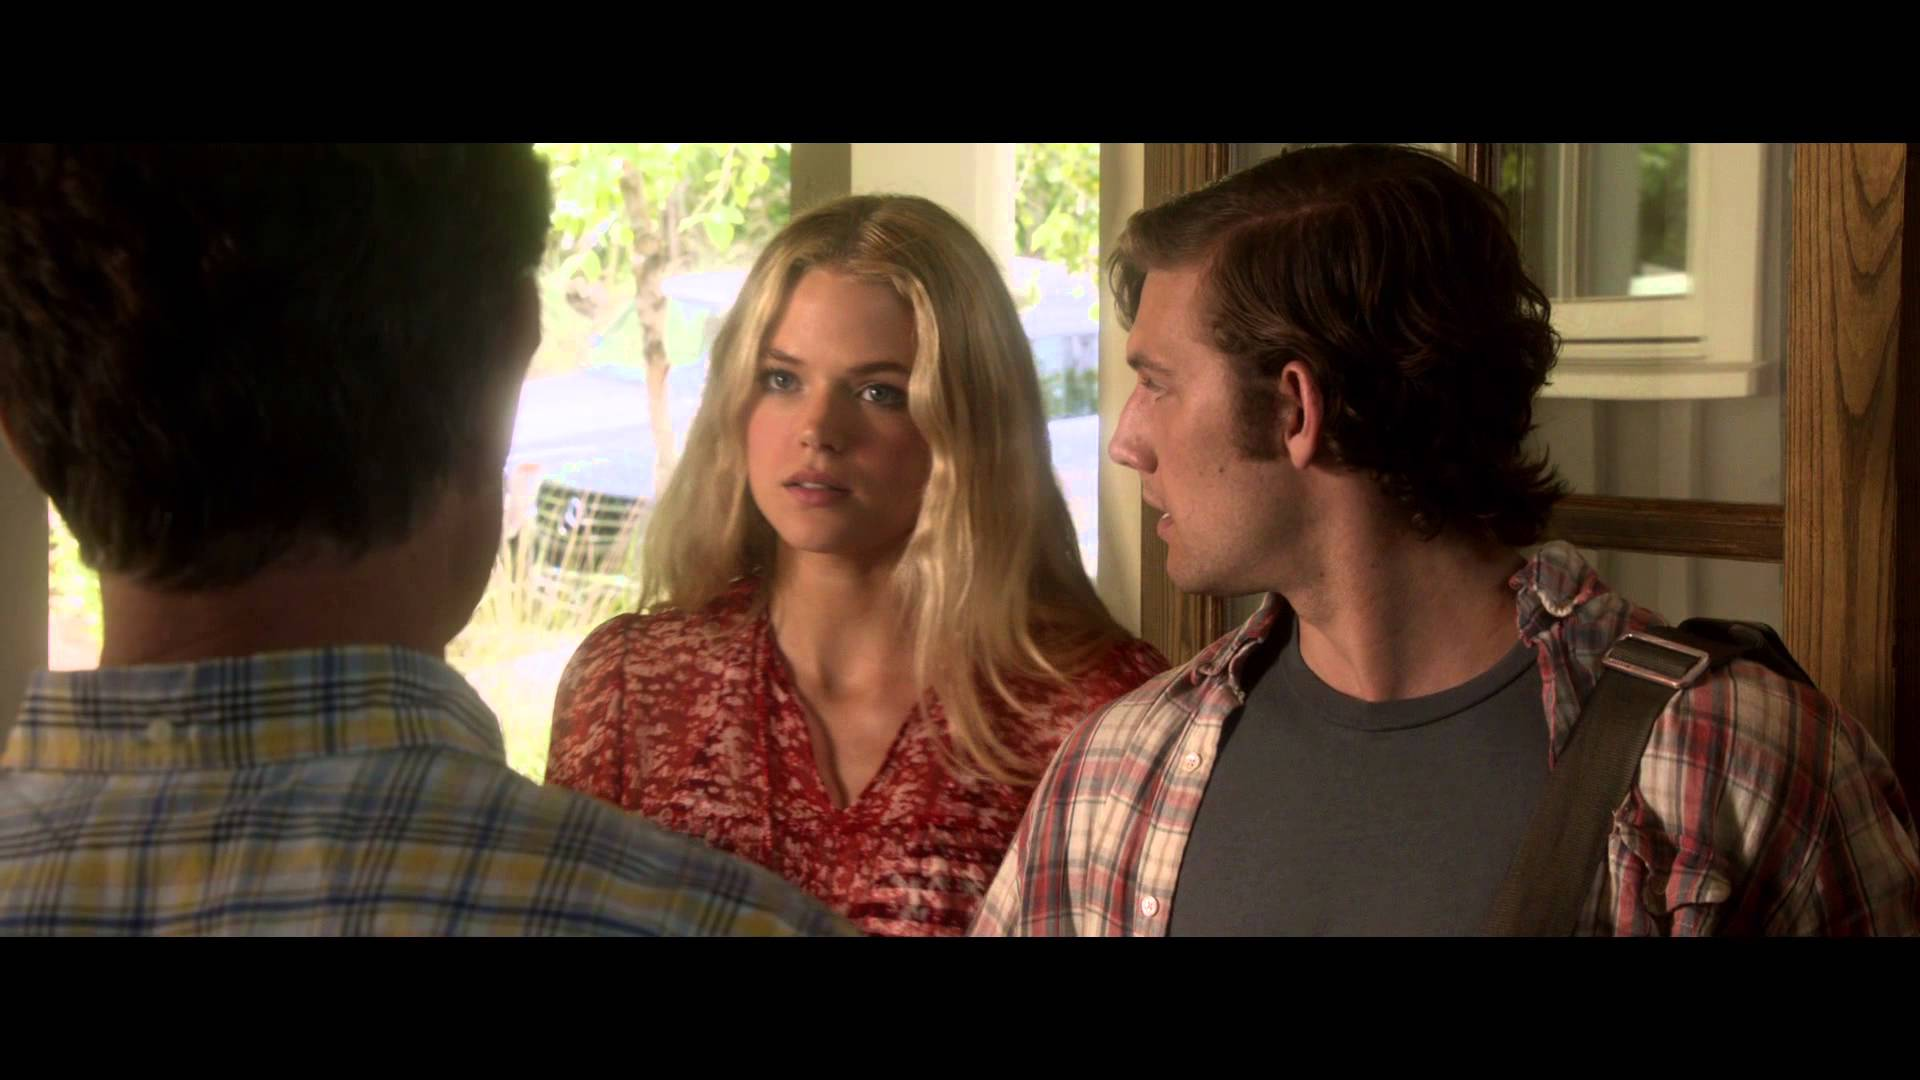 Endless Love Movie 2014 Wallpapers 1481